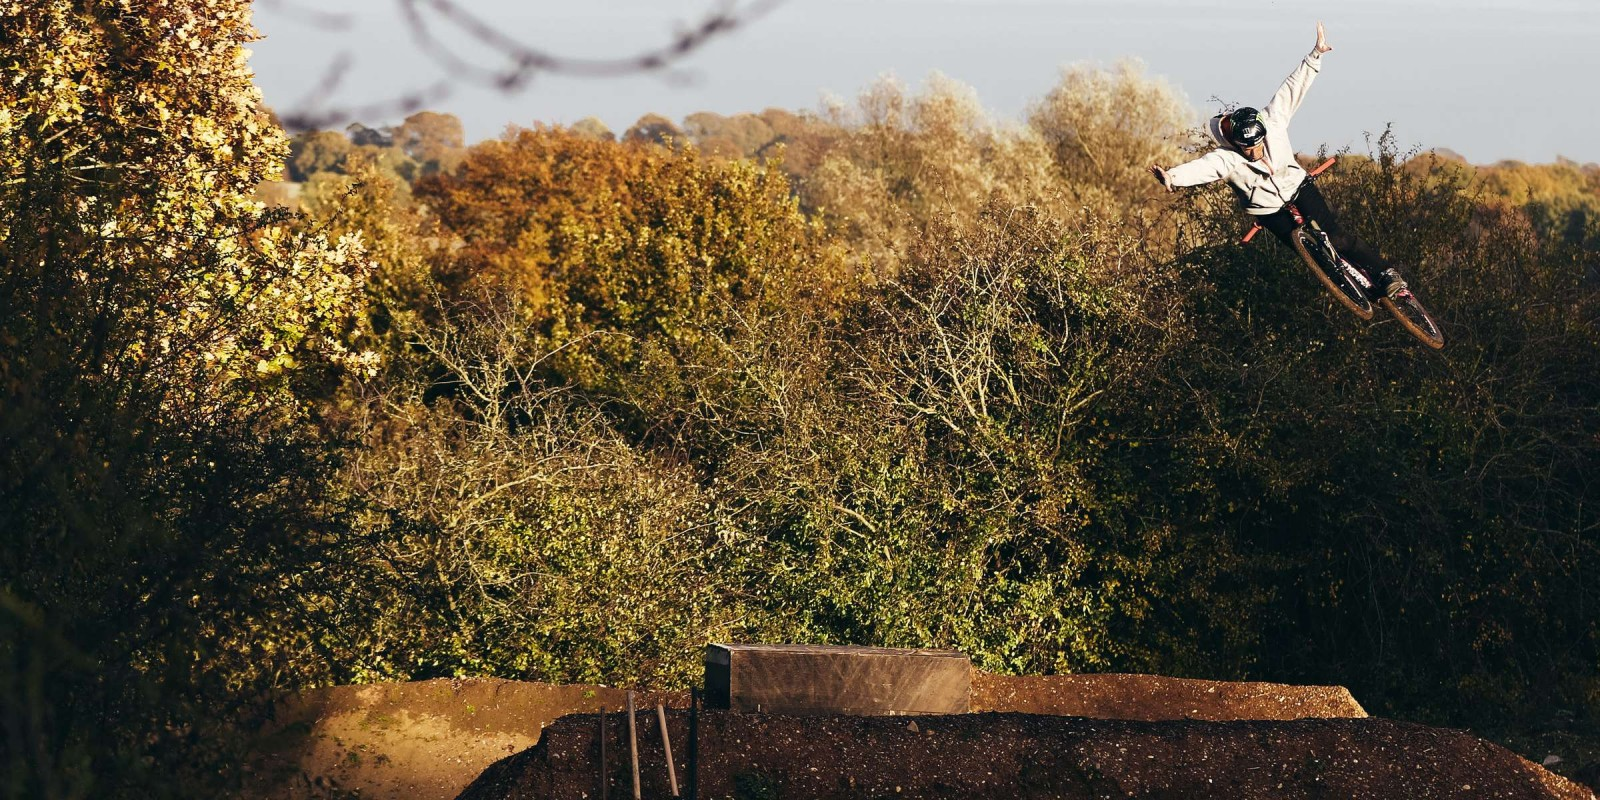 Images from Episode 1 of the 2017 'Bangers Tour' featuring Max Fredriksson and Sam Pilgrim